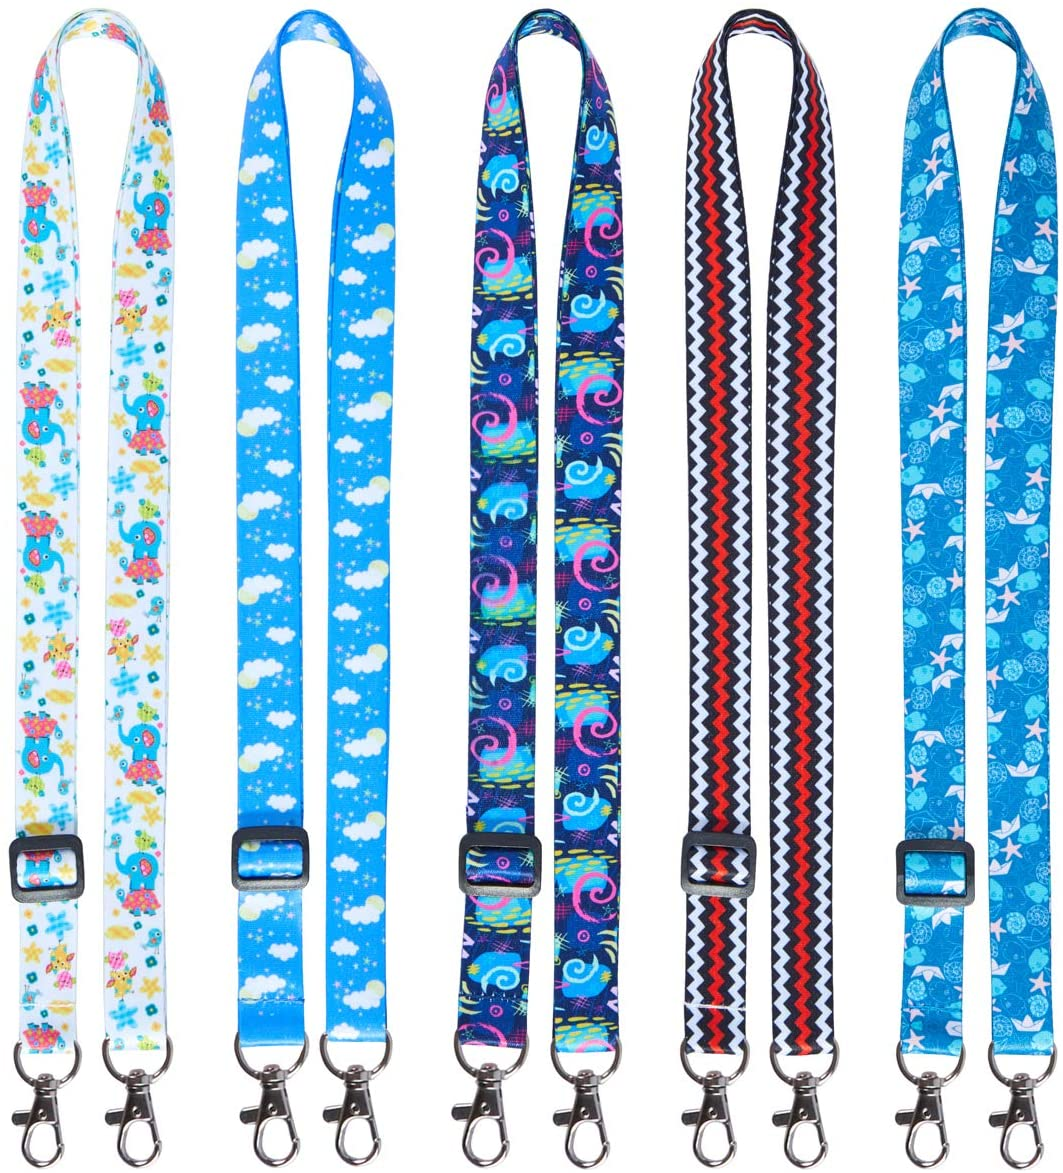 YOUOWO Lanyards Adjustable 5 Pack Cute Lanyard for Kids face mask id Badges Holder Lanyard Cartoon Double Hook lanyards for ID Card Keys Adult Keychains Neck Office Lanyard